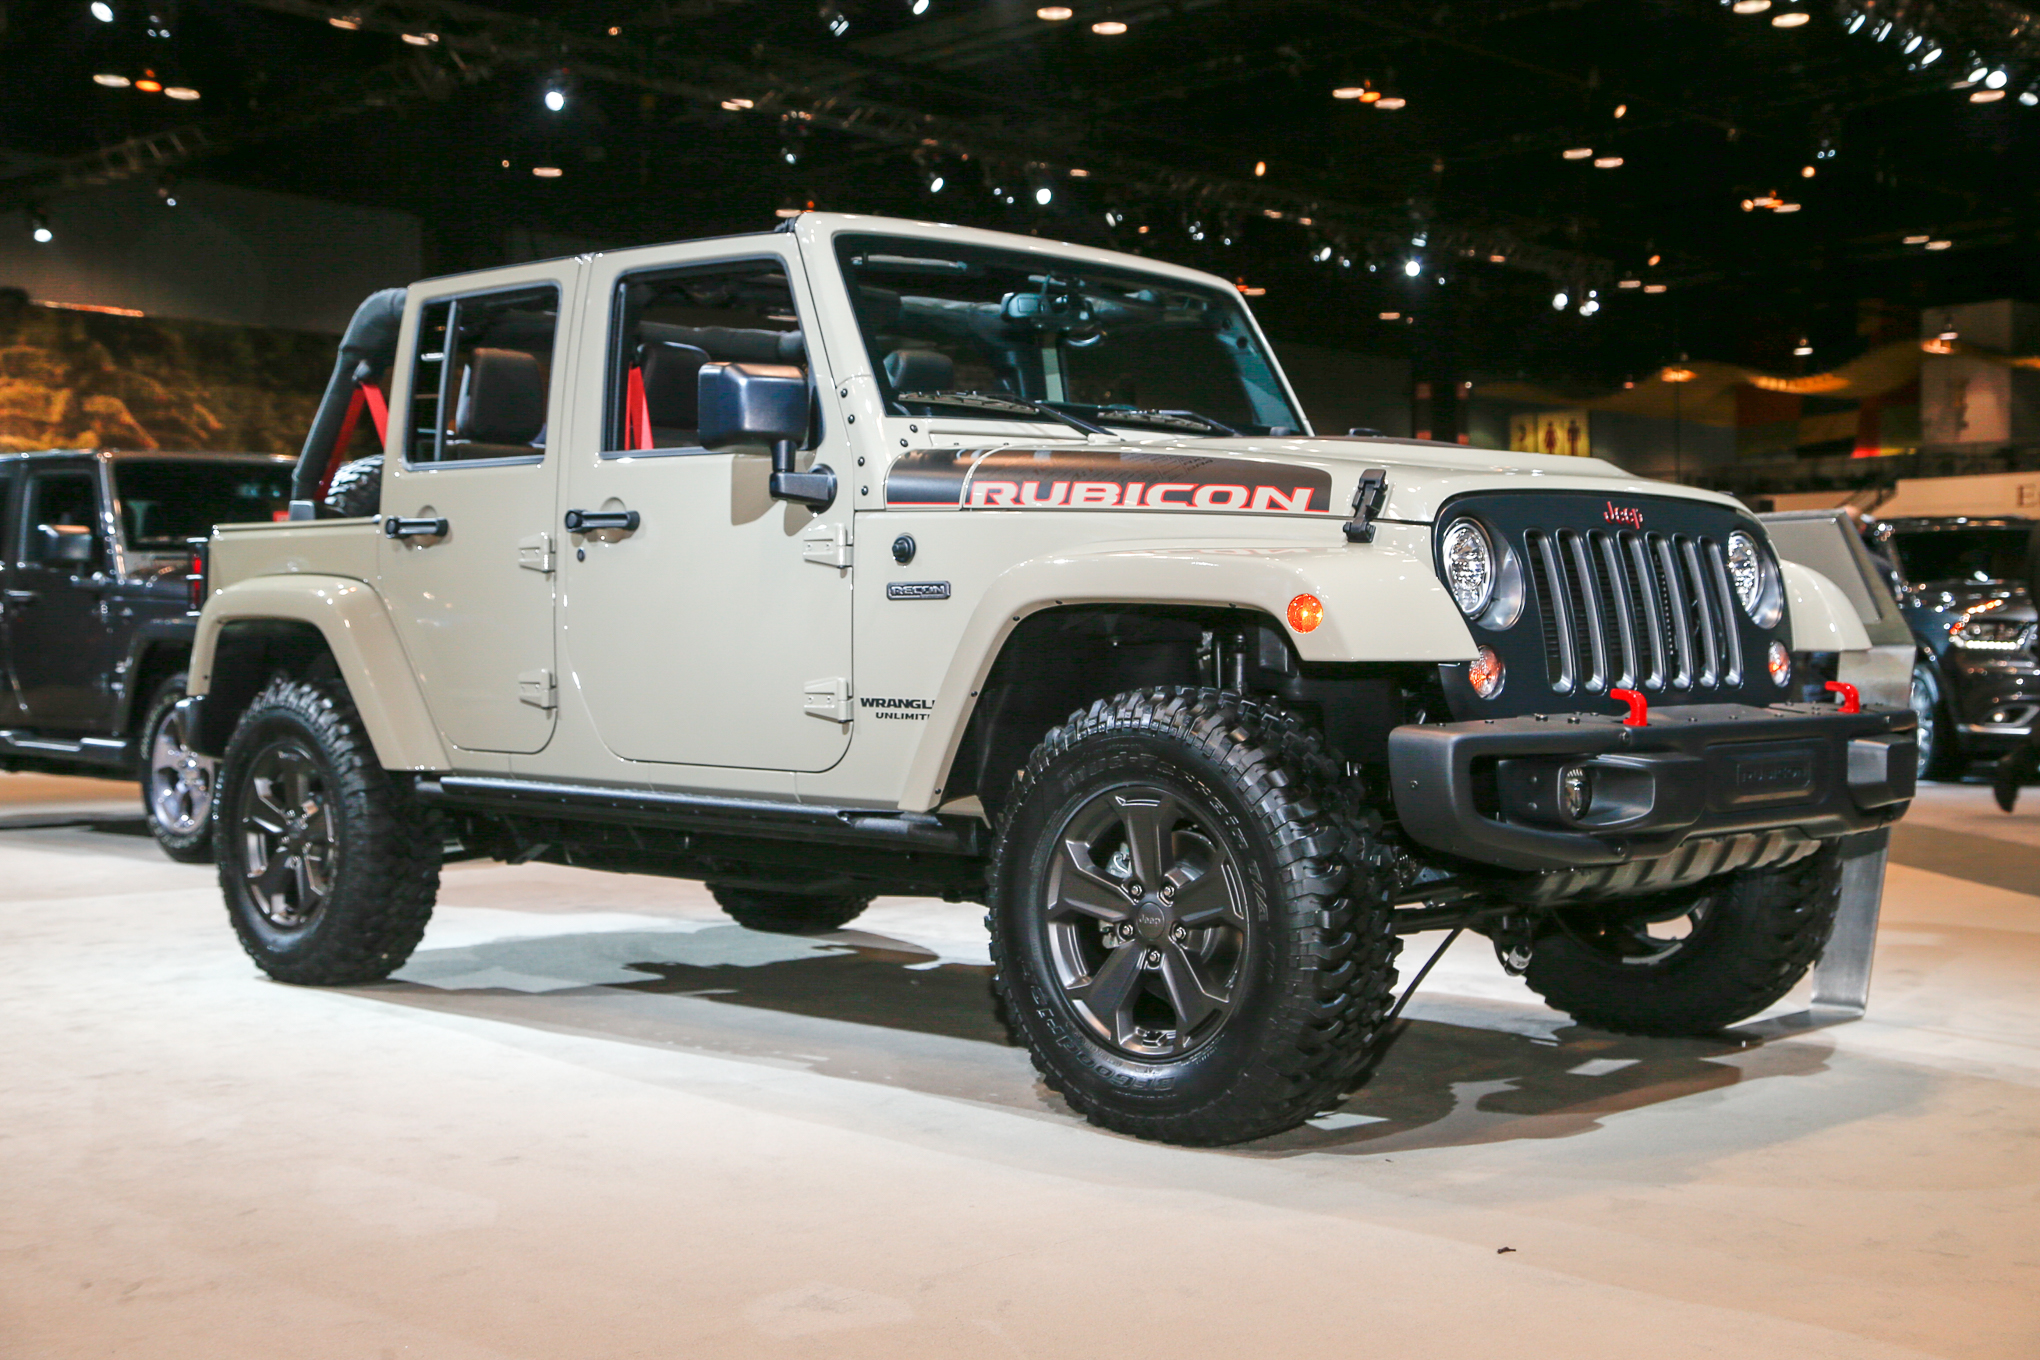 2017 jeep wrangler rubicon recon is the most off road ready jk wrangler yet automobile magazine. Black Bedroom Furniture Sets. Home Design Ideas